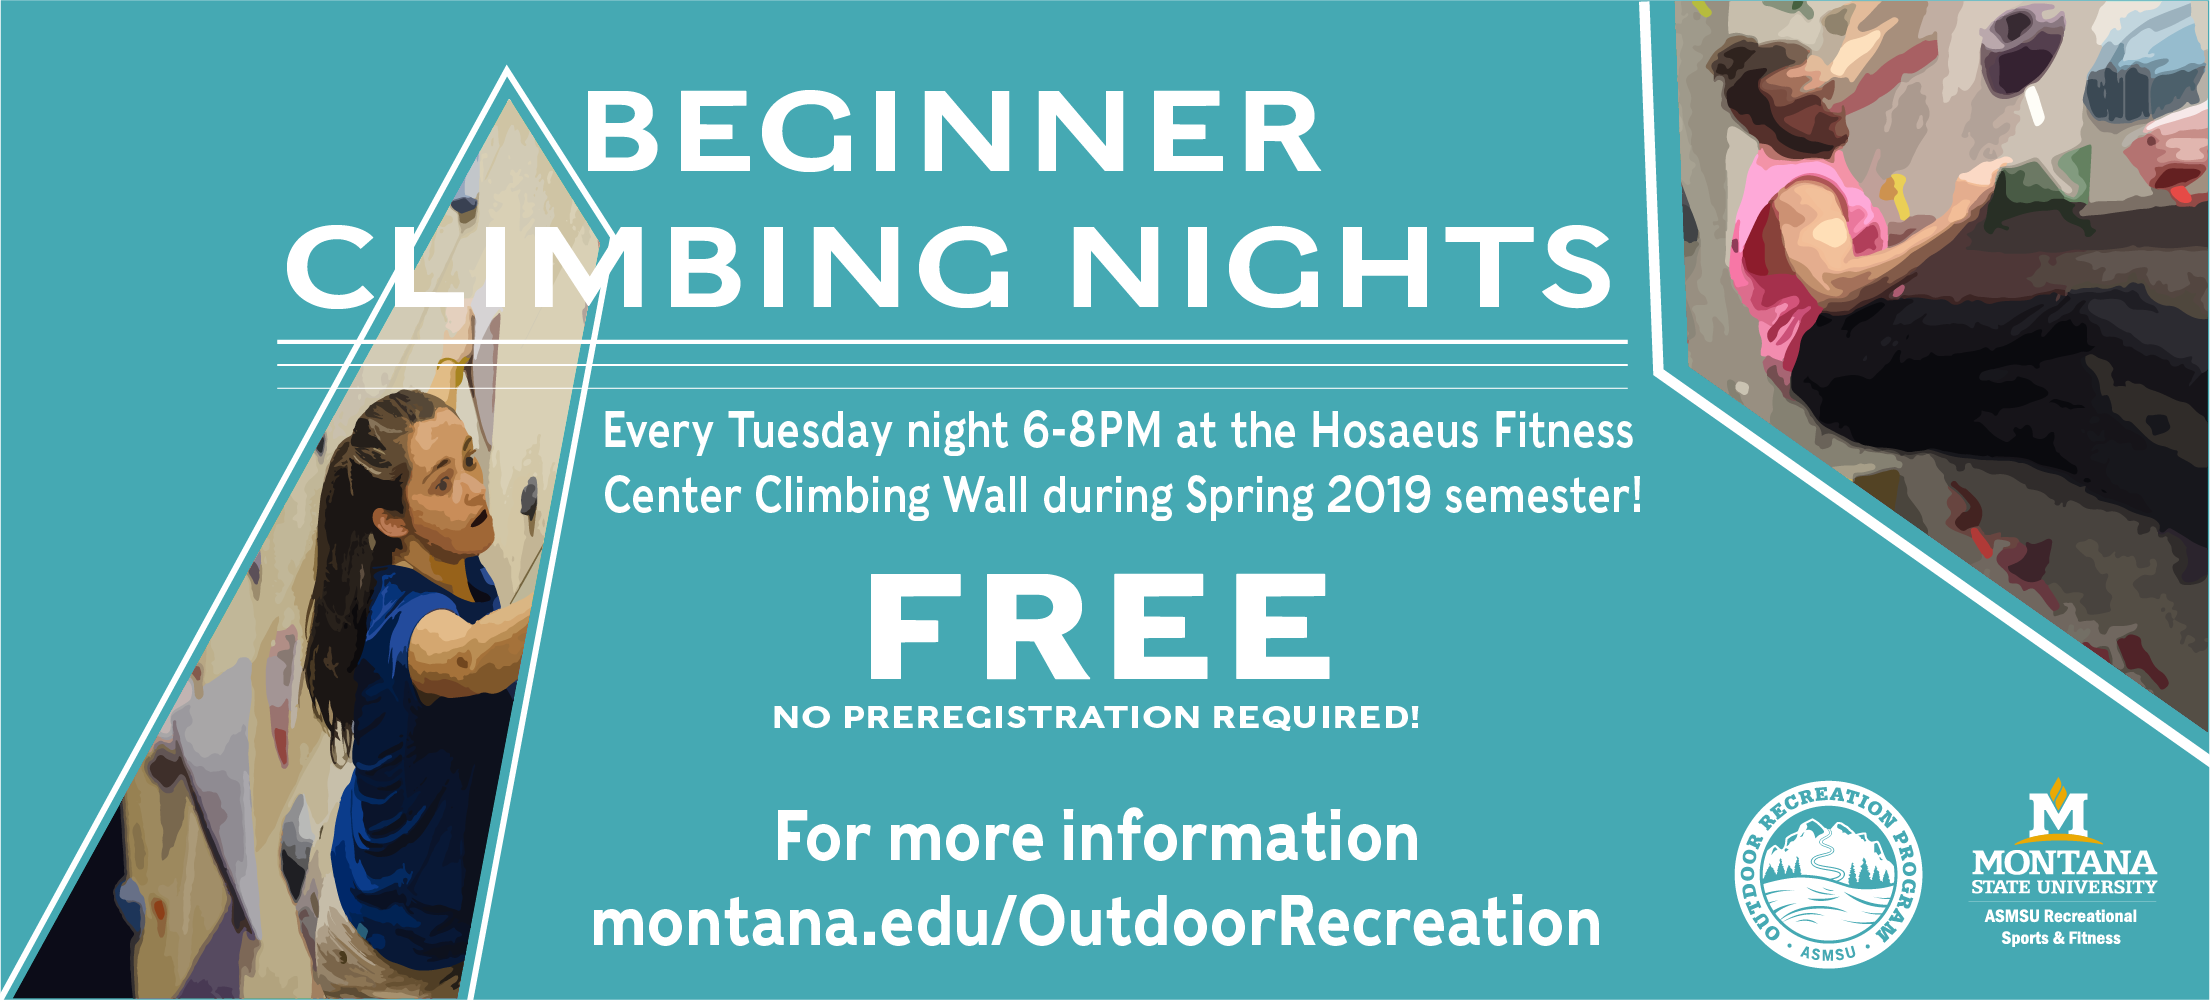 Free climbing nights for beginners every Tuesday throughout the semester.  6-8 pm at the Hosaeus Fitness Center's climbing wall.